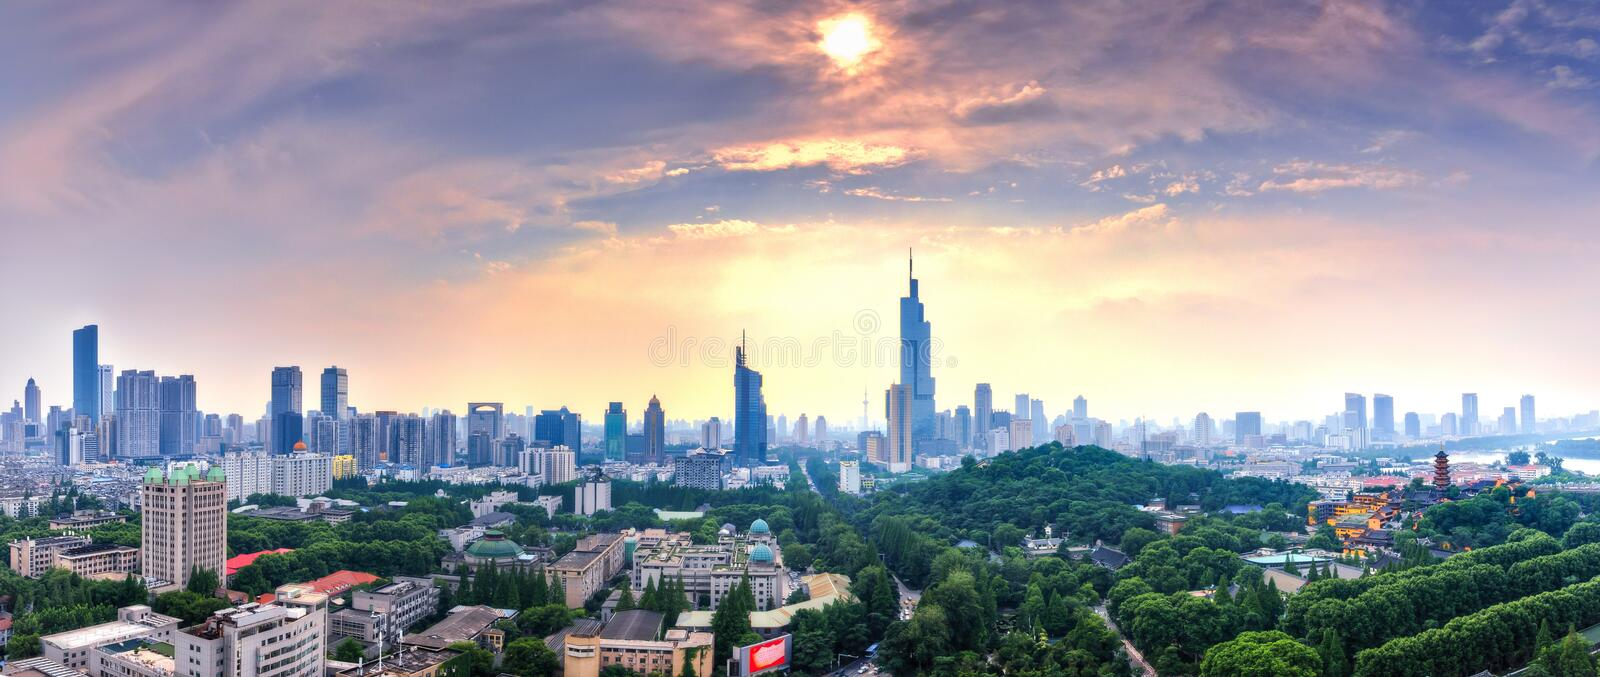 Panorama di Nanjing City immagine stock